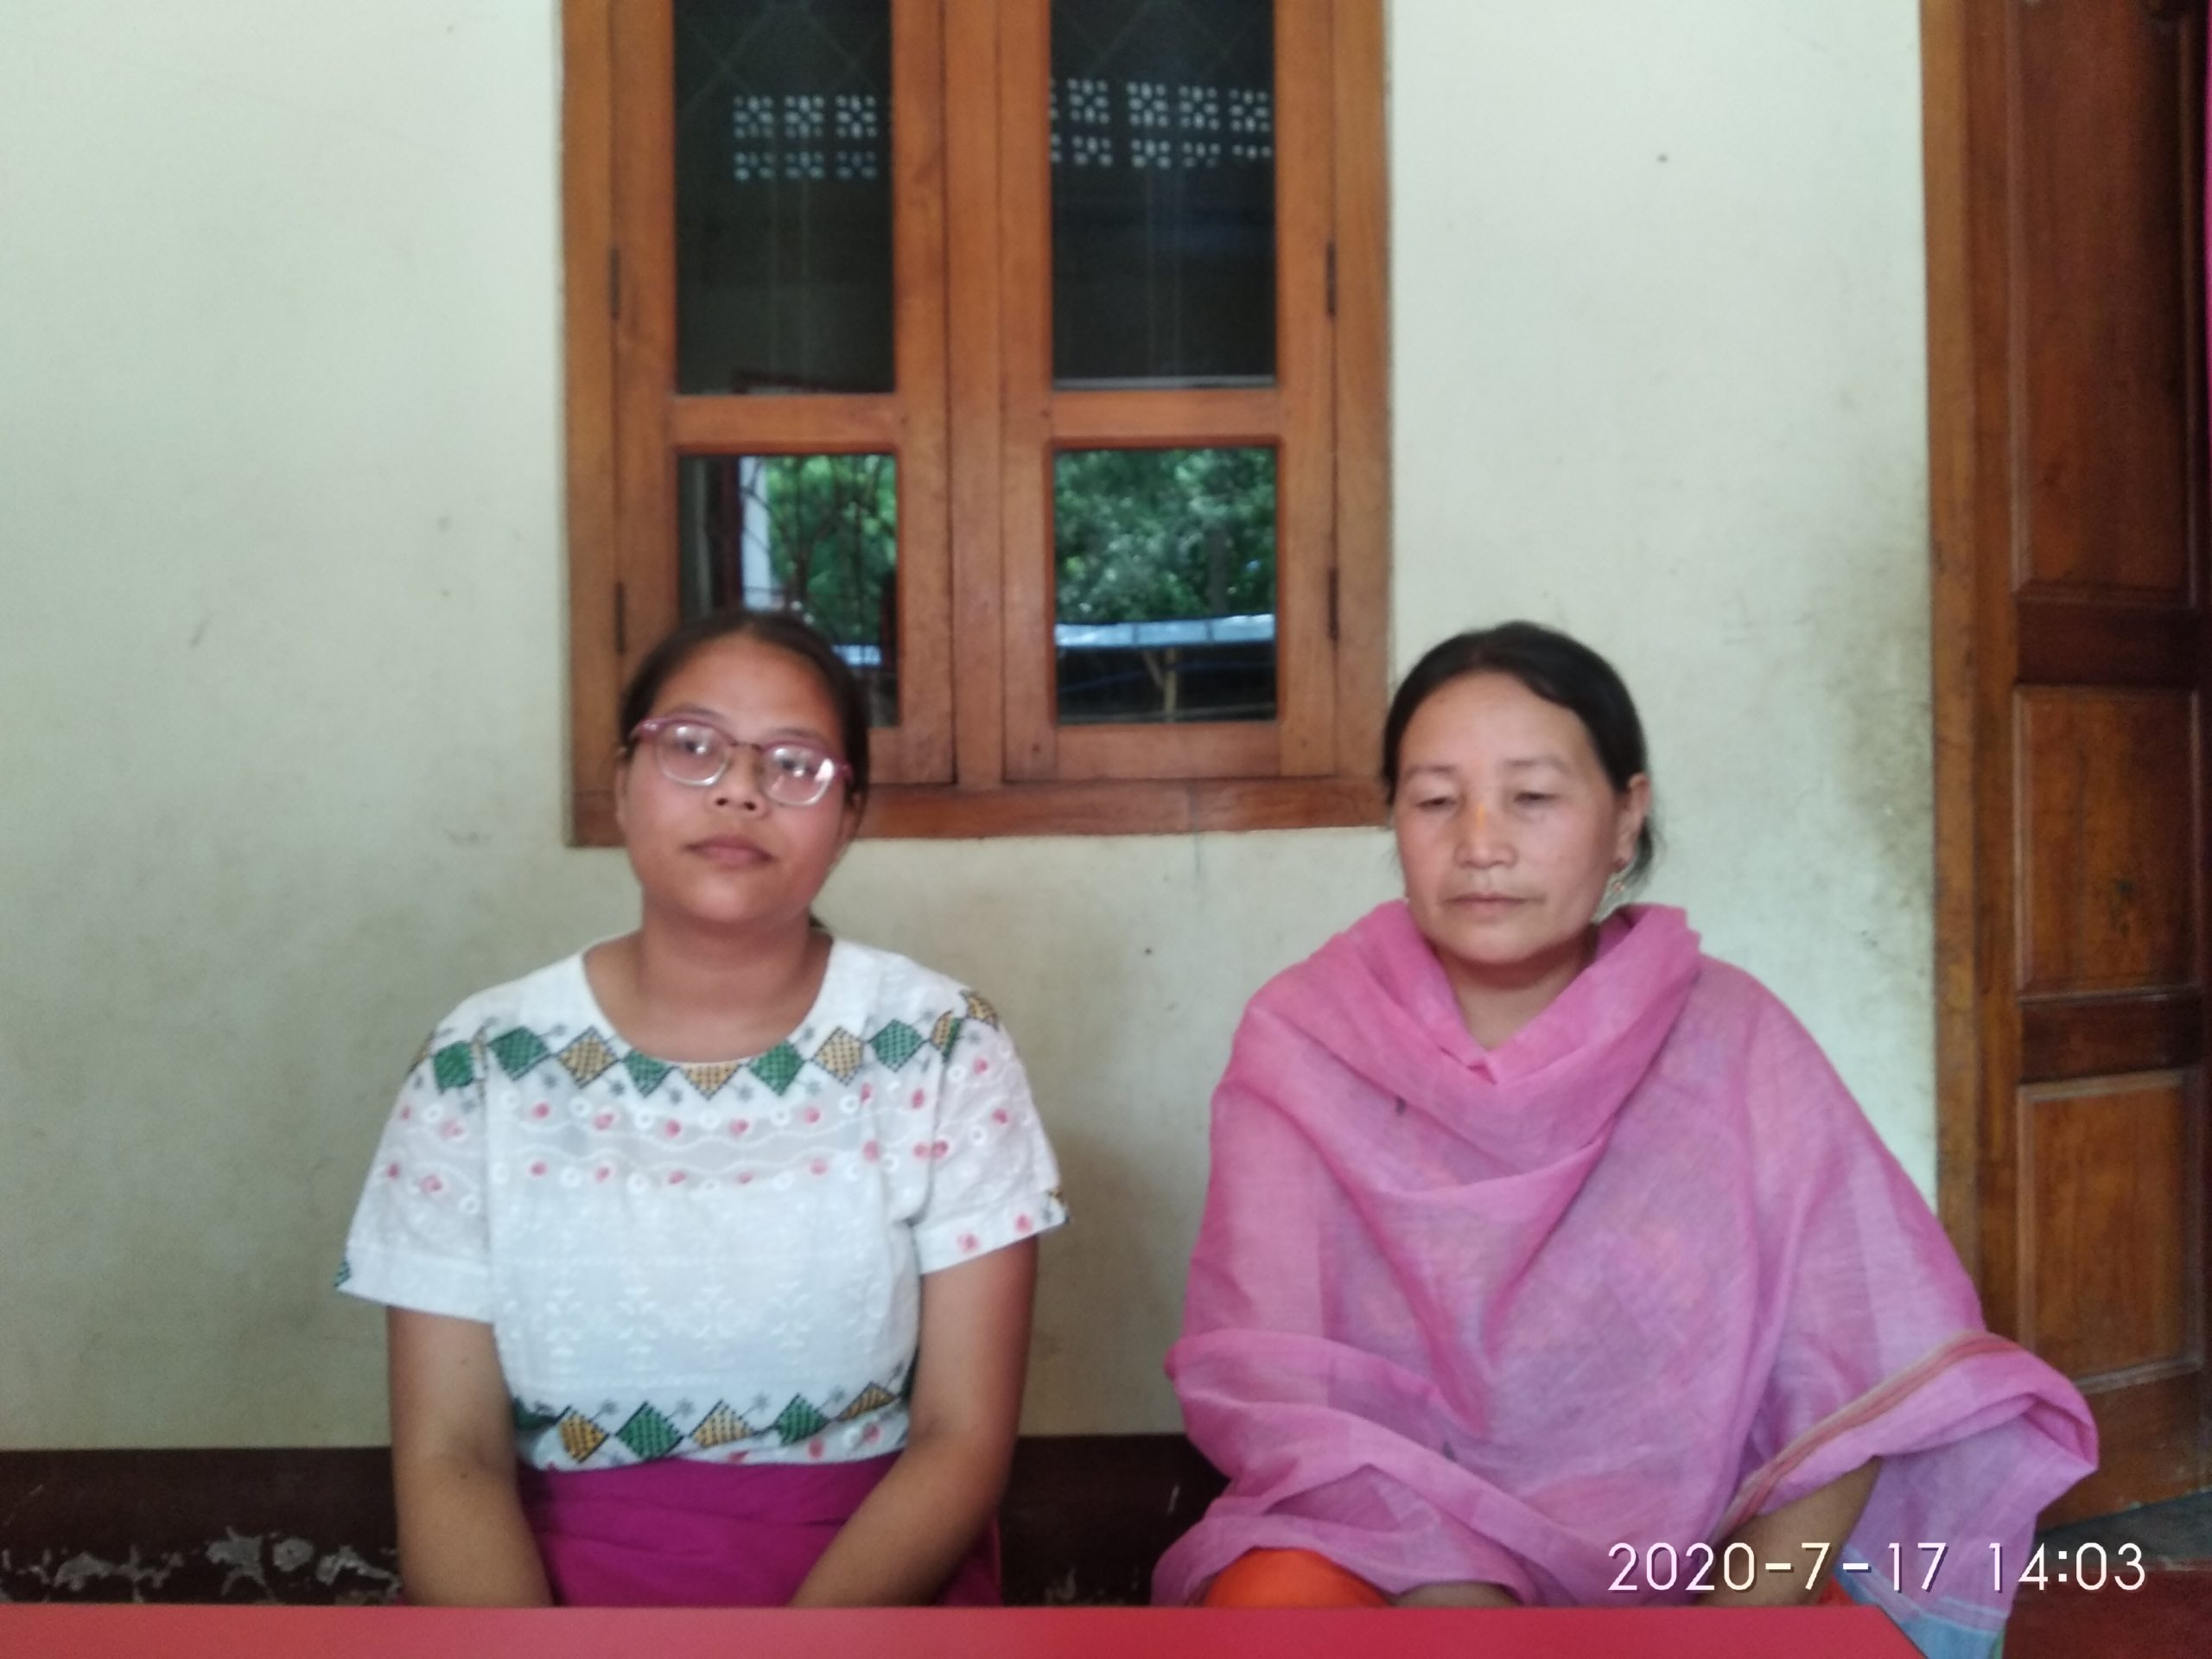 Education system in Manipur improving, will continue studies here: Commerce 2nd Position holder